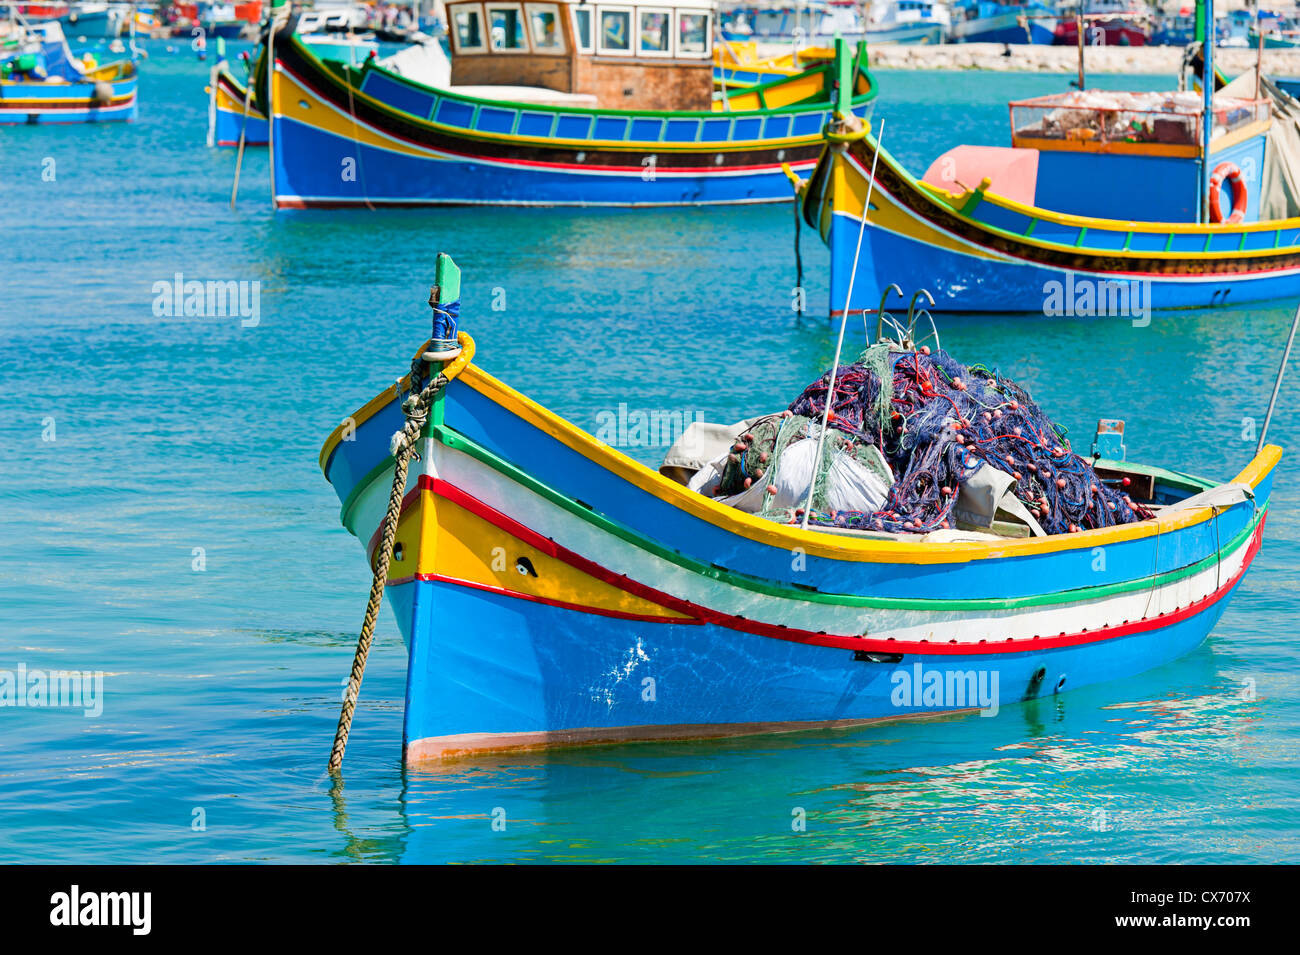 Fishing boats in Marsaxlokk Malta - Stock Image